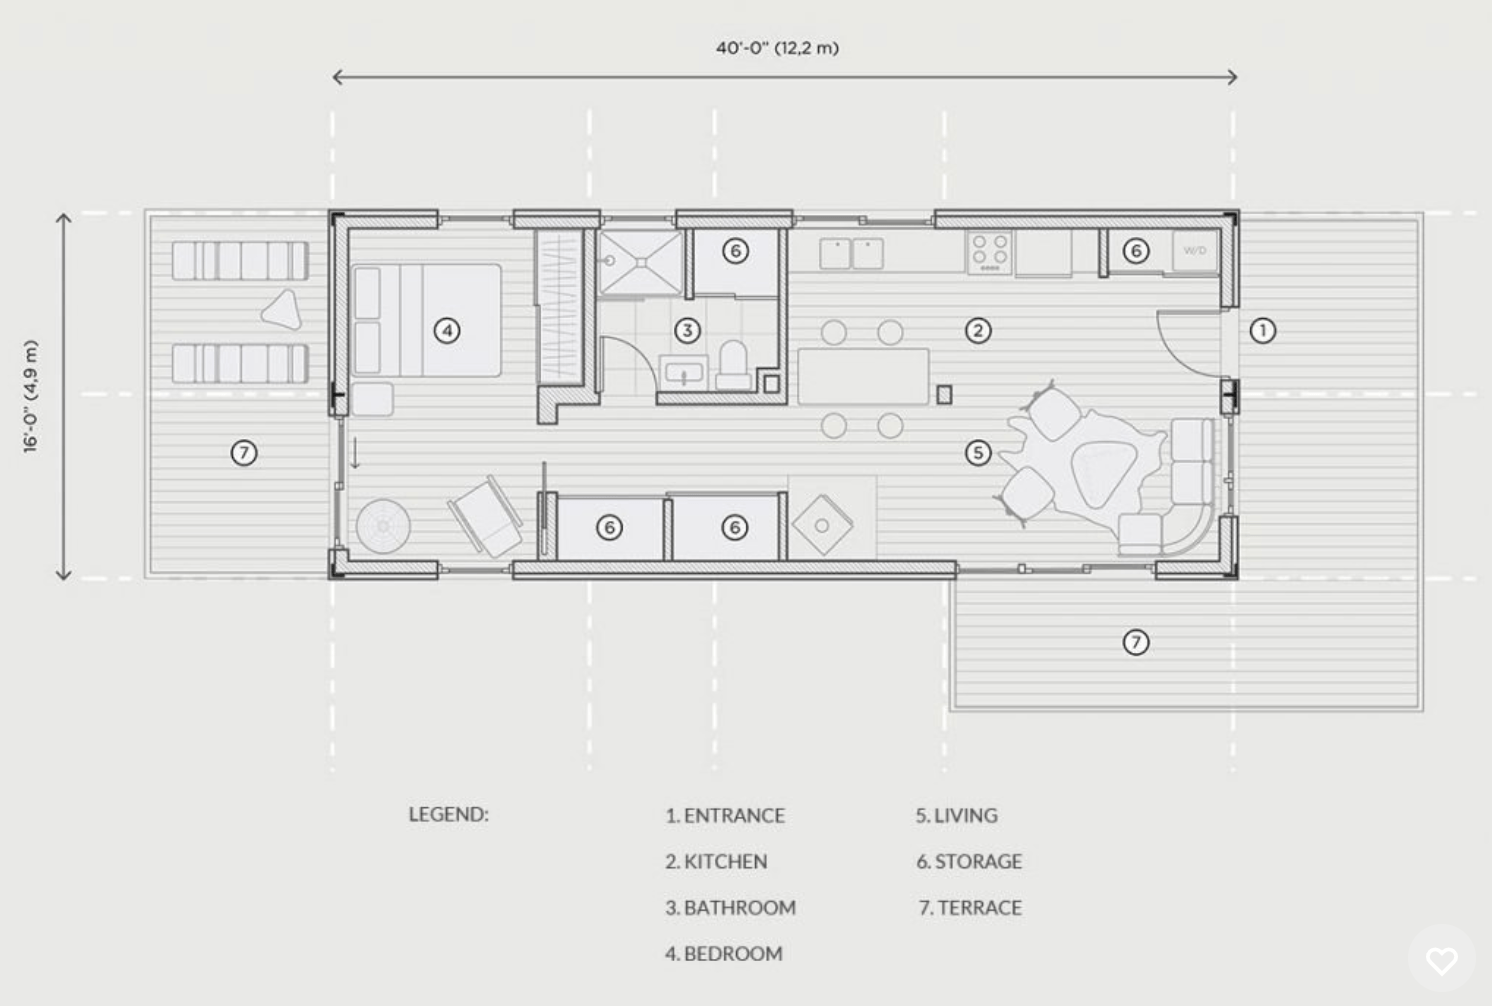 This Home Is Made Of One 40 Container Making Up 640 Square Feet Living E Model Showing A Bedroom Layout With Flexible